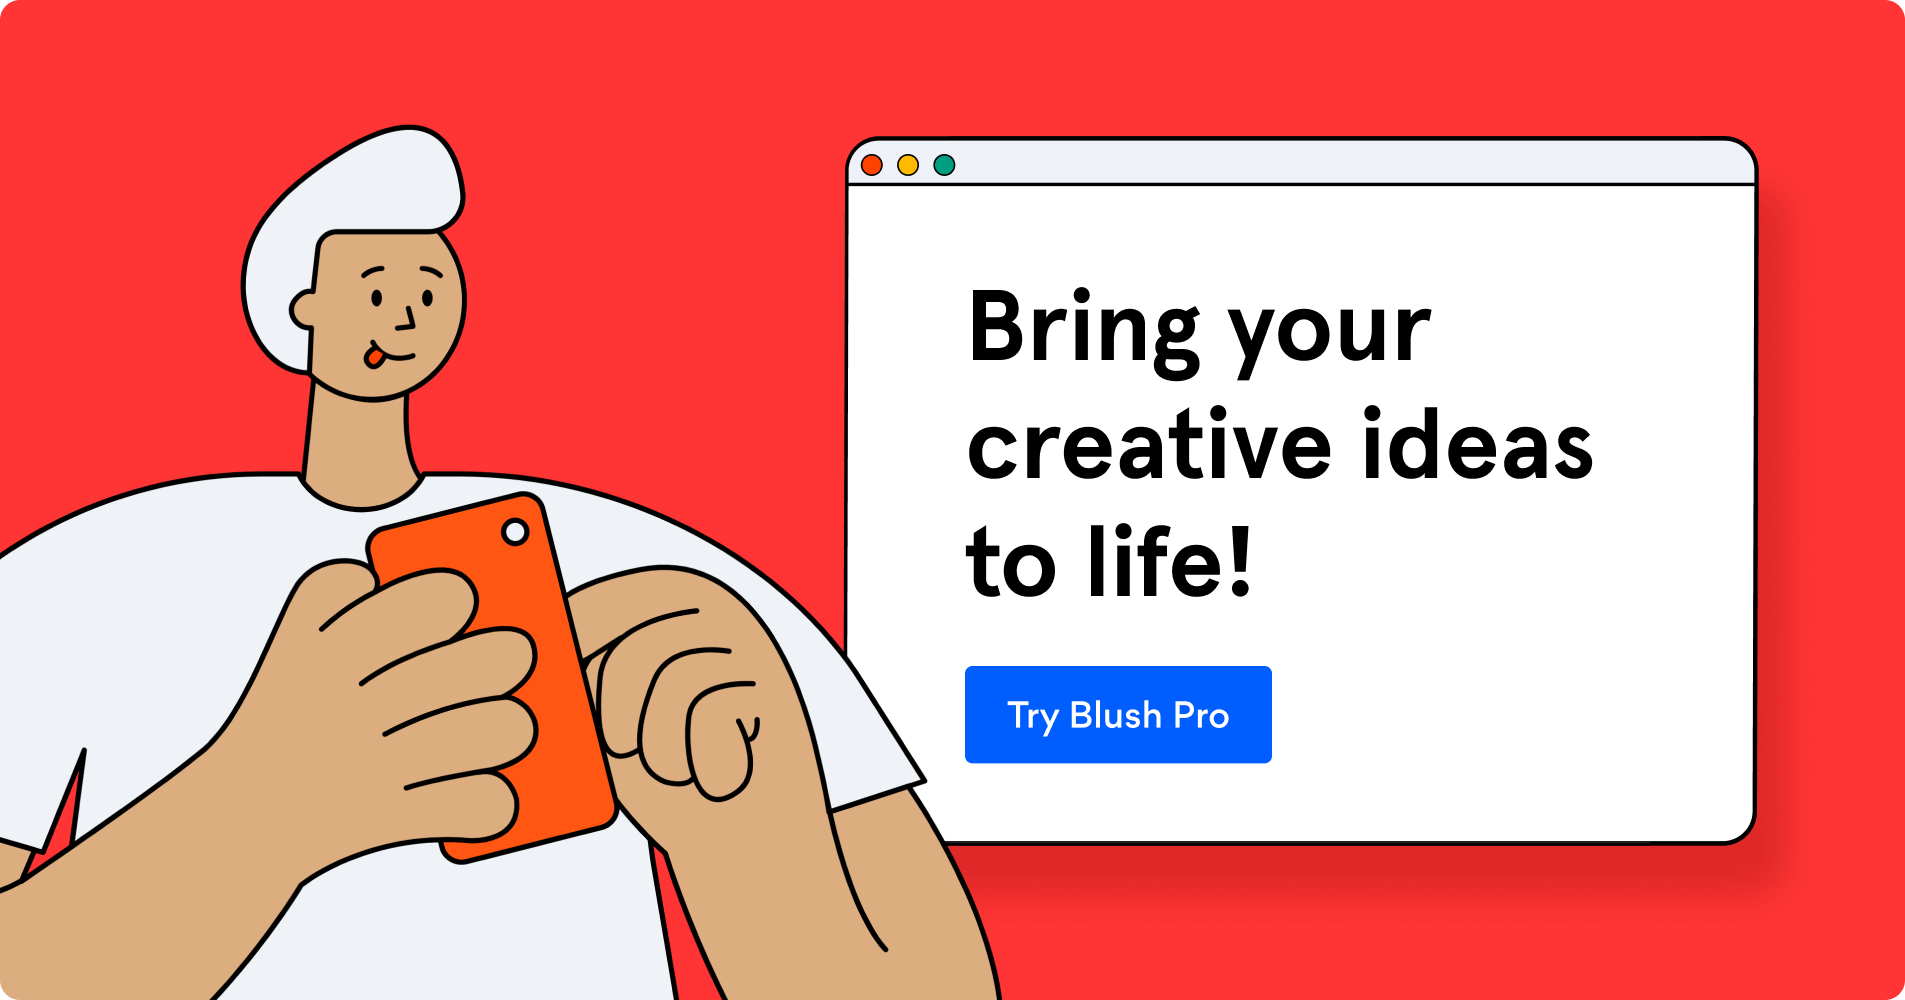 Try Blush Pro for free and brin your creative ideas to life.